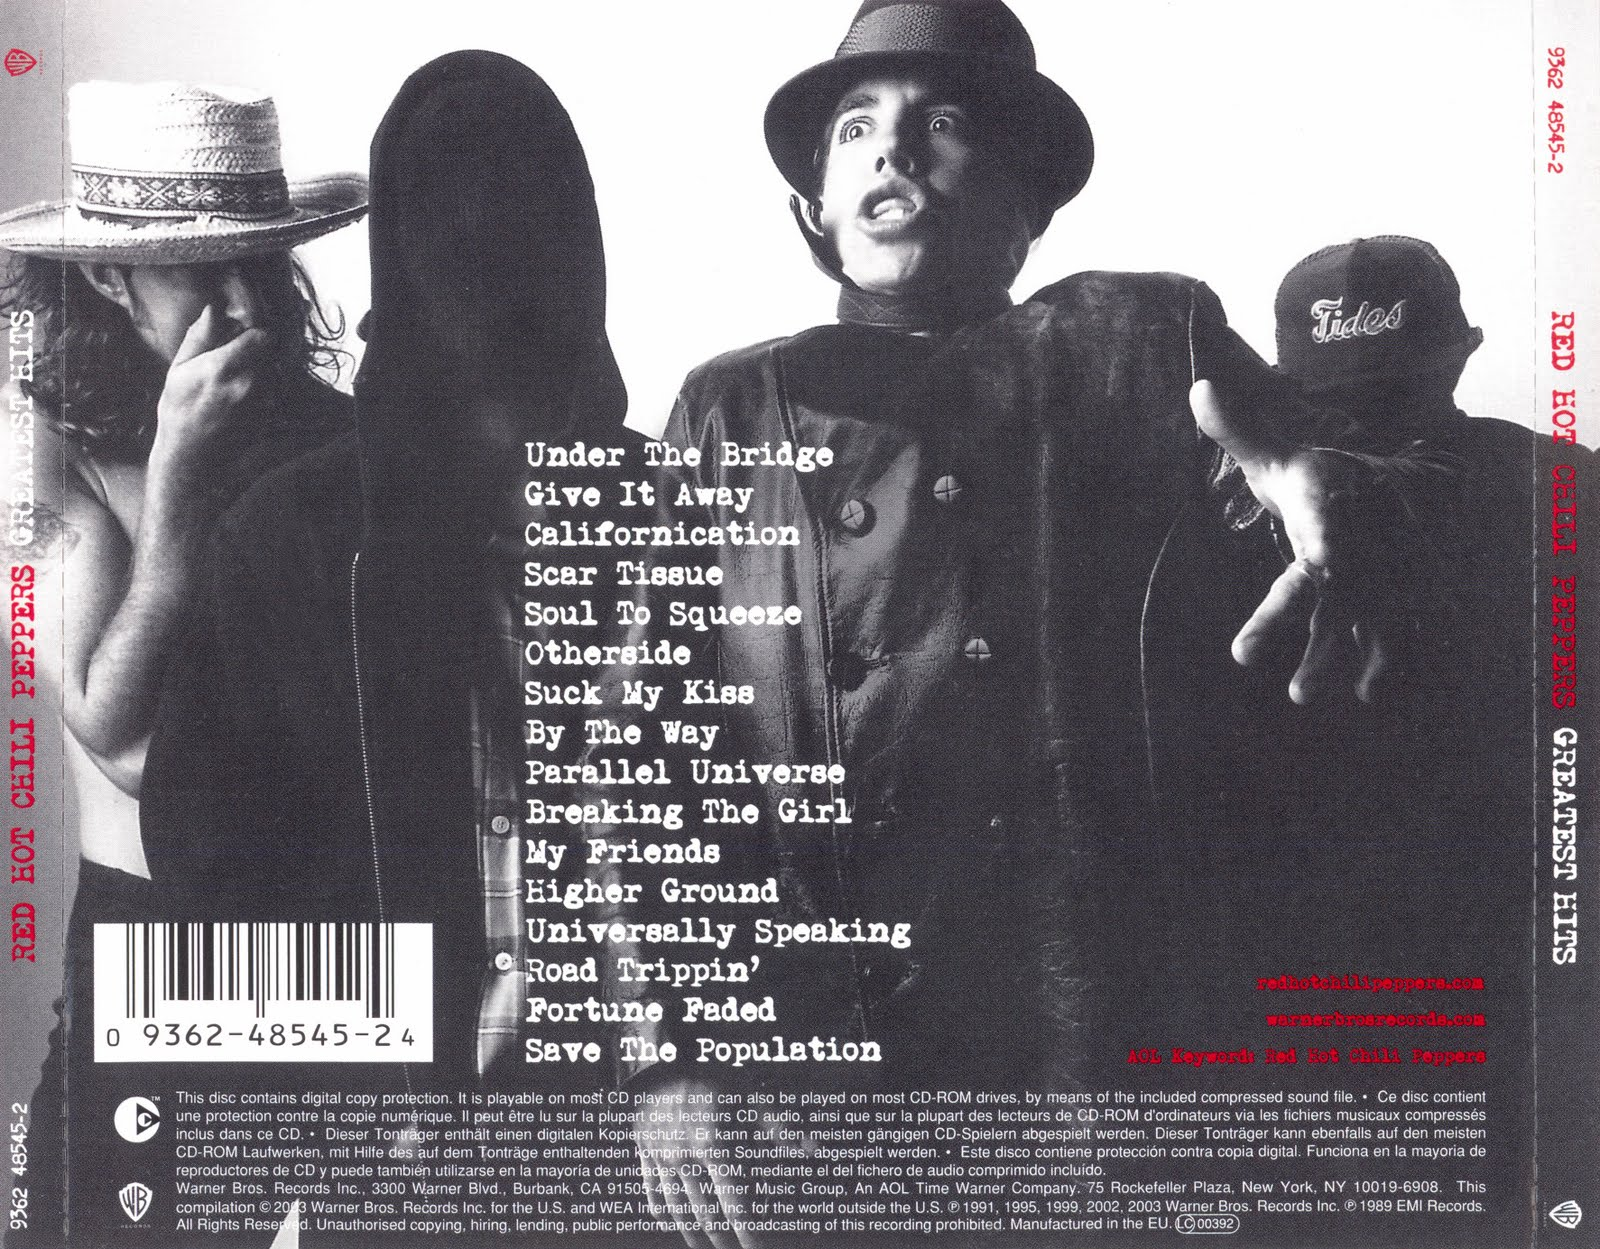 My Music Collection: Red Hot Chili Peppers